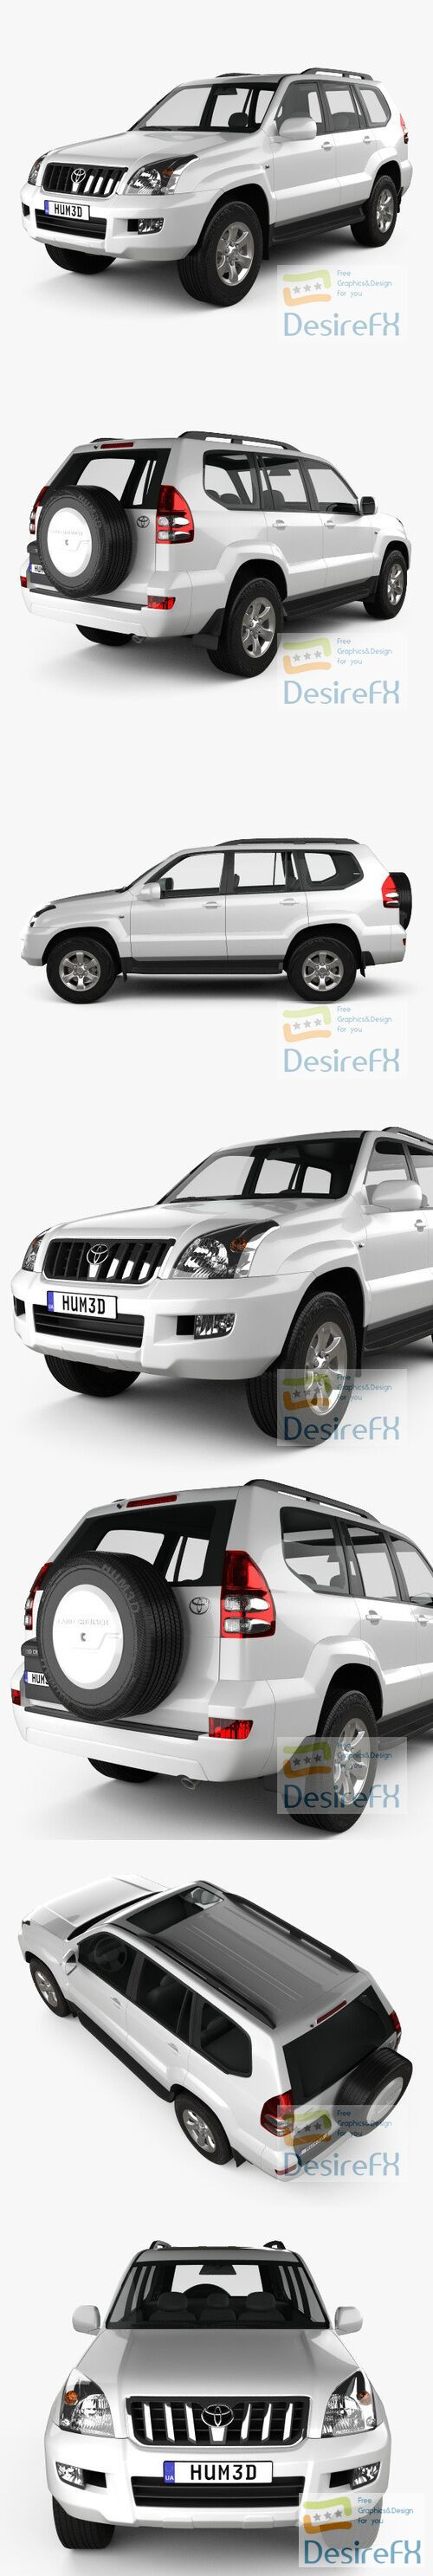 Toyota Land Cruiser Prado 120 5-door 2009 3D Model